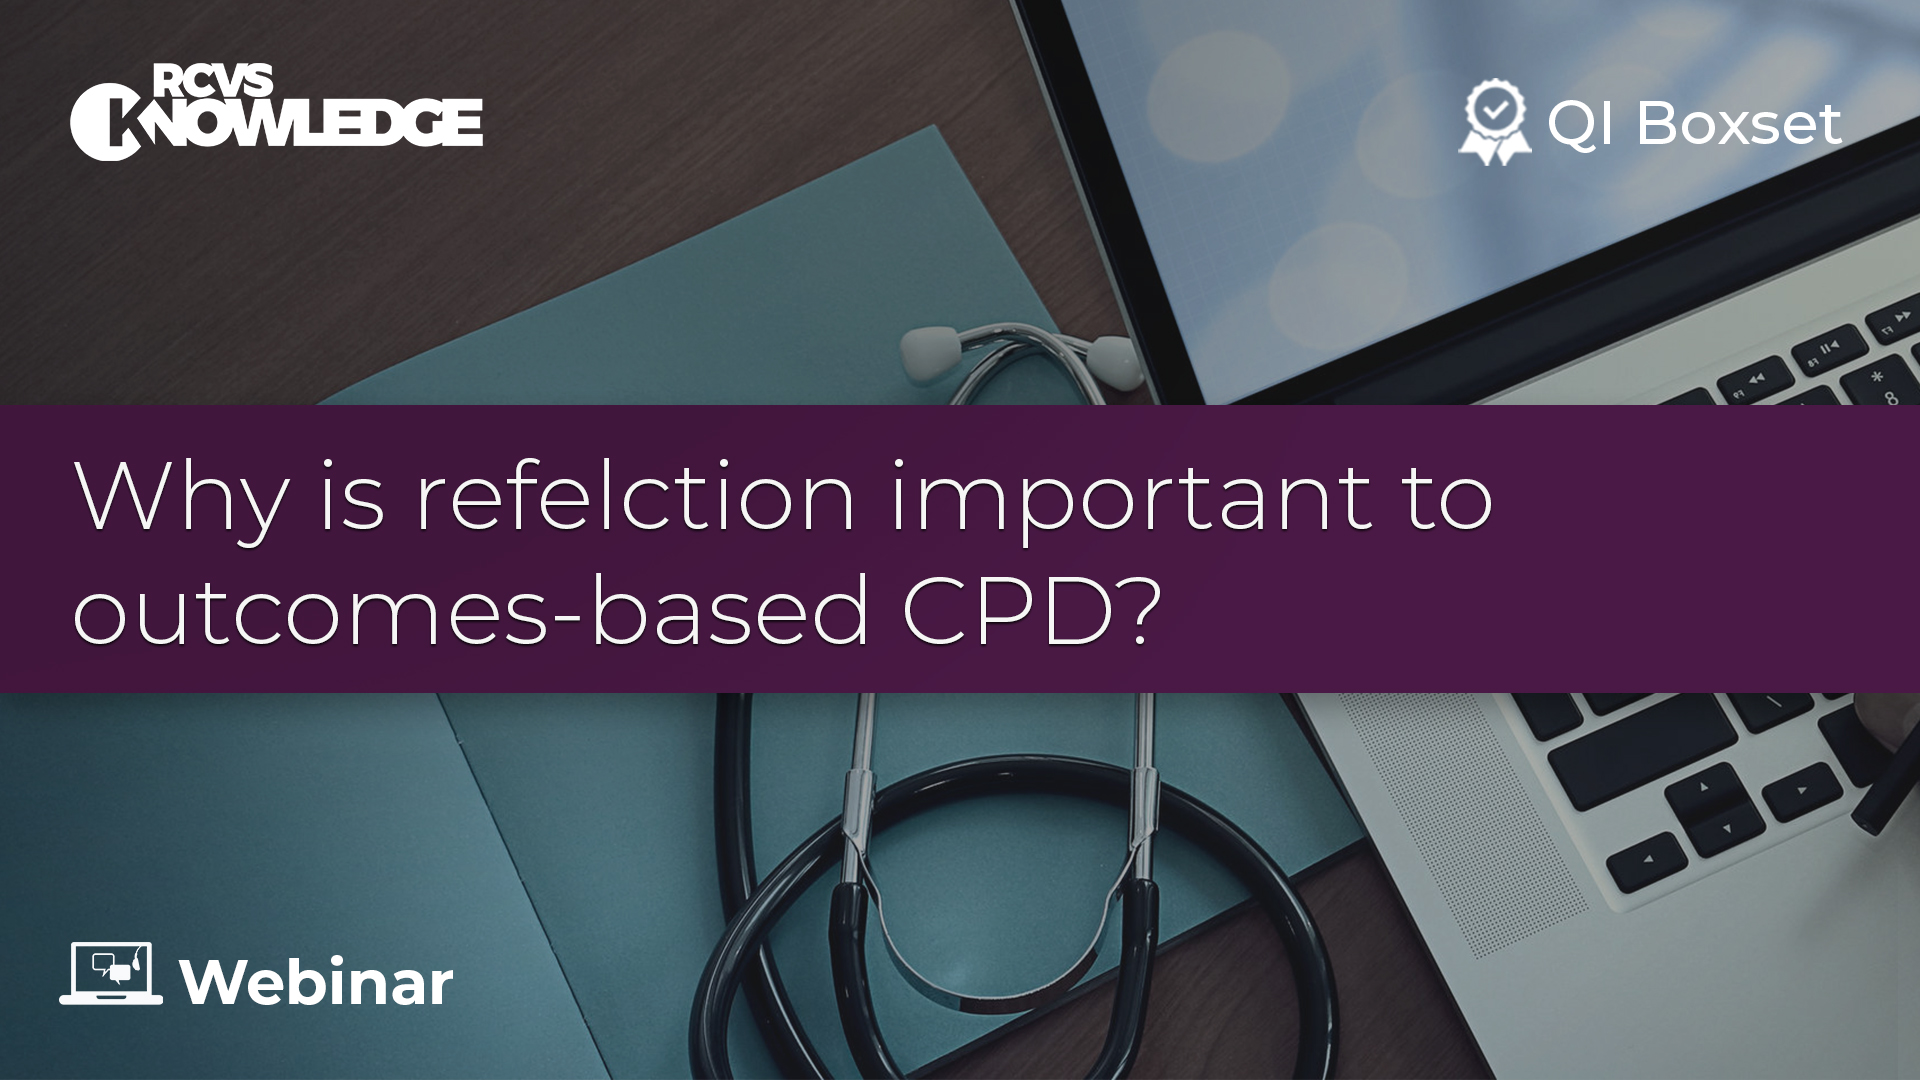 Why is reflection important to outcomes-based CPD?